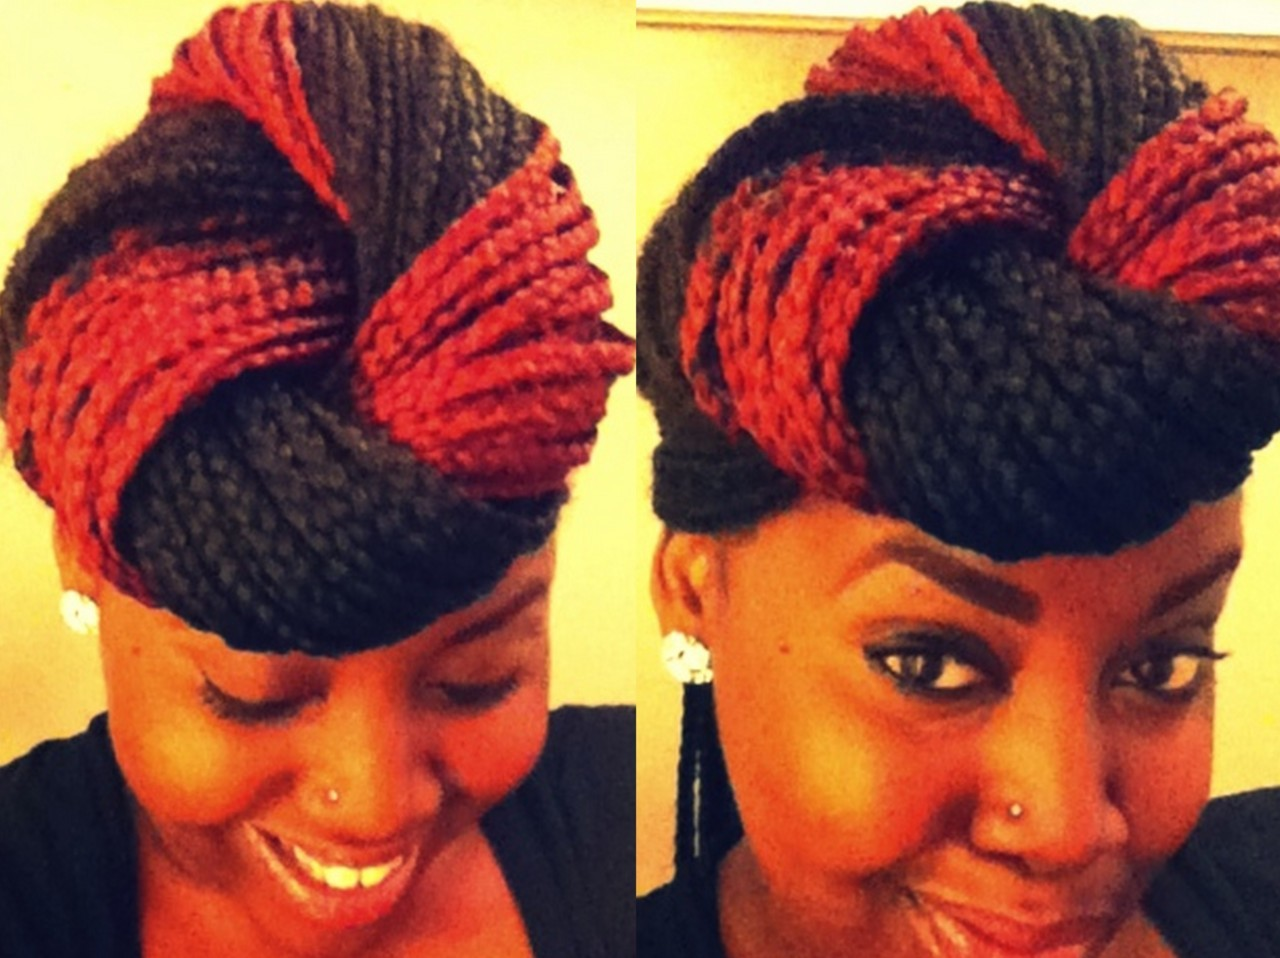 my box braid updo. braids done & styled by me.  -onyinyechi